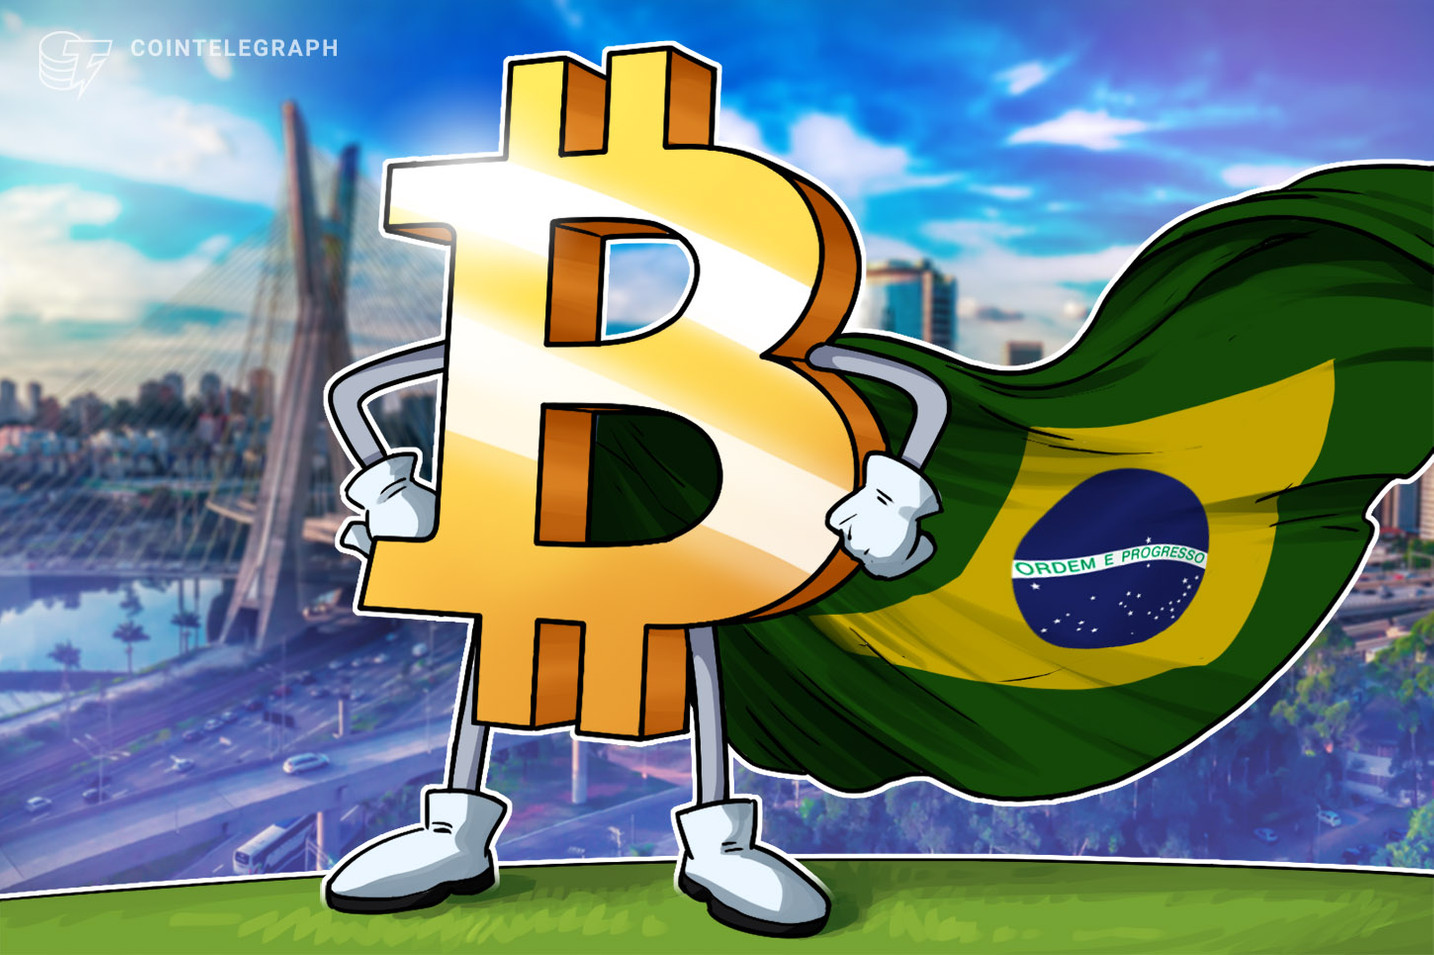 Binance contrata ex-executivo do JP Morgan para cuidar da expansão da exchanges no Brasil e Europa